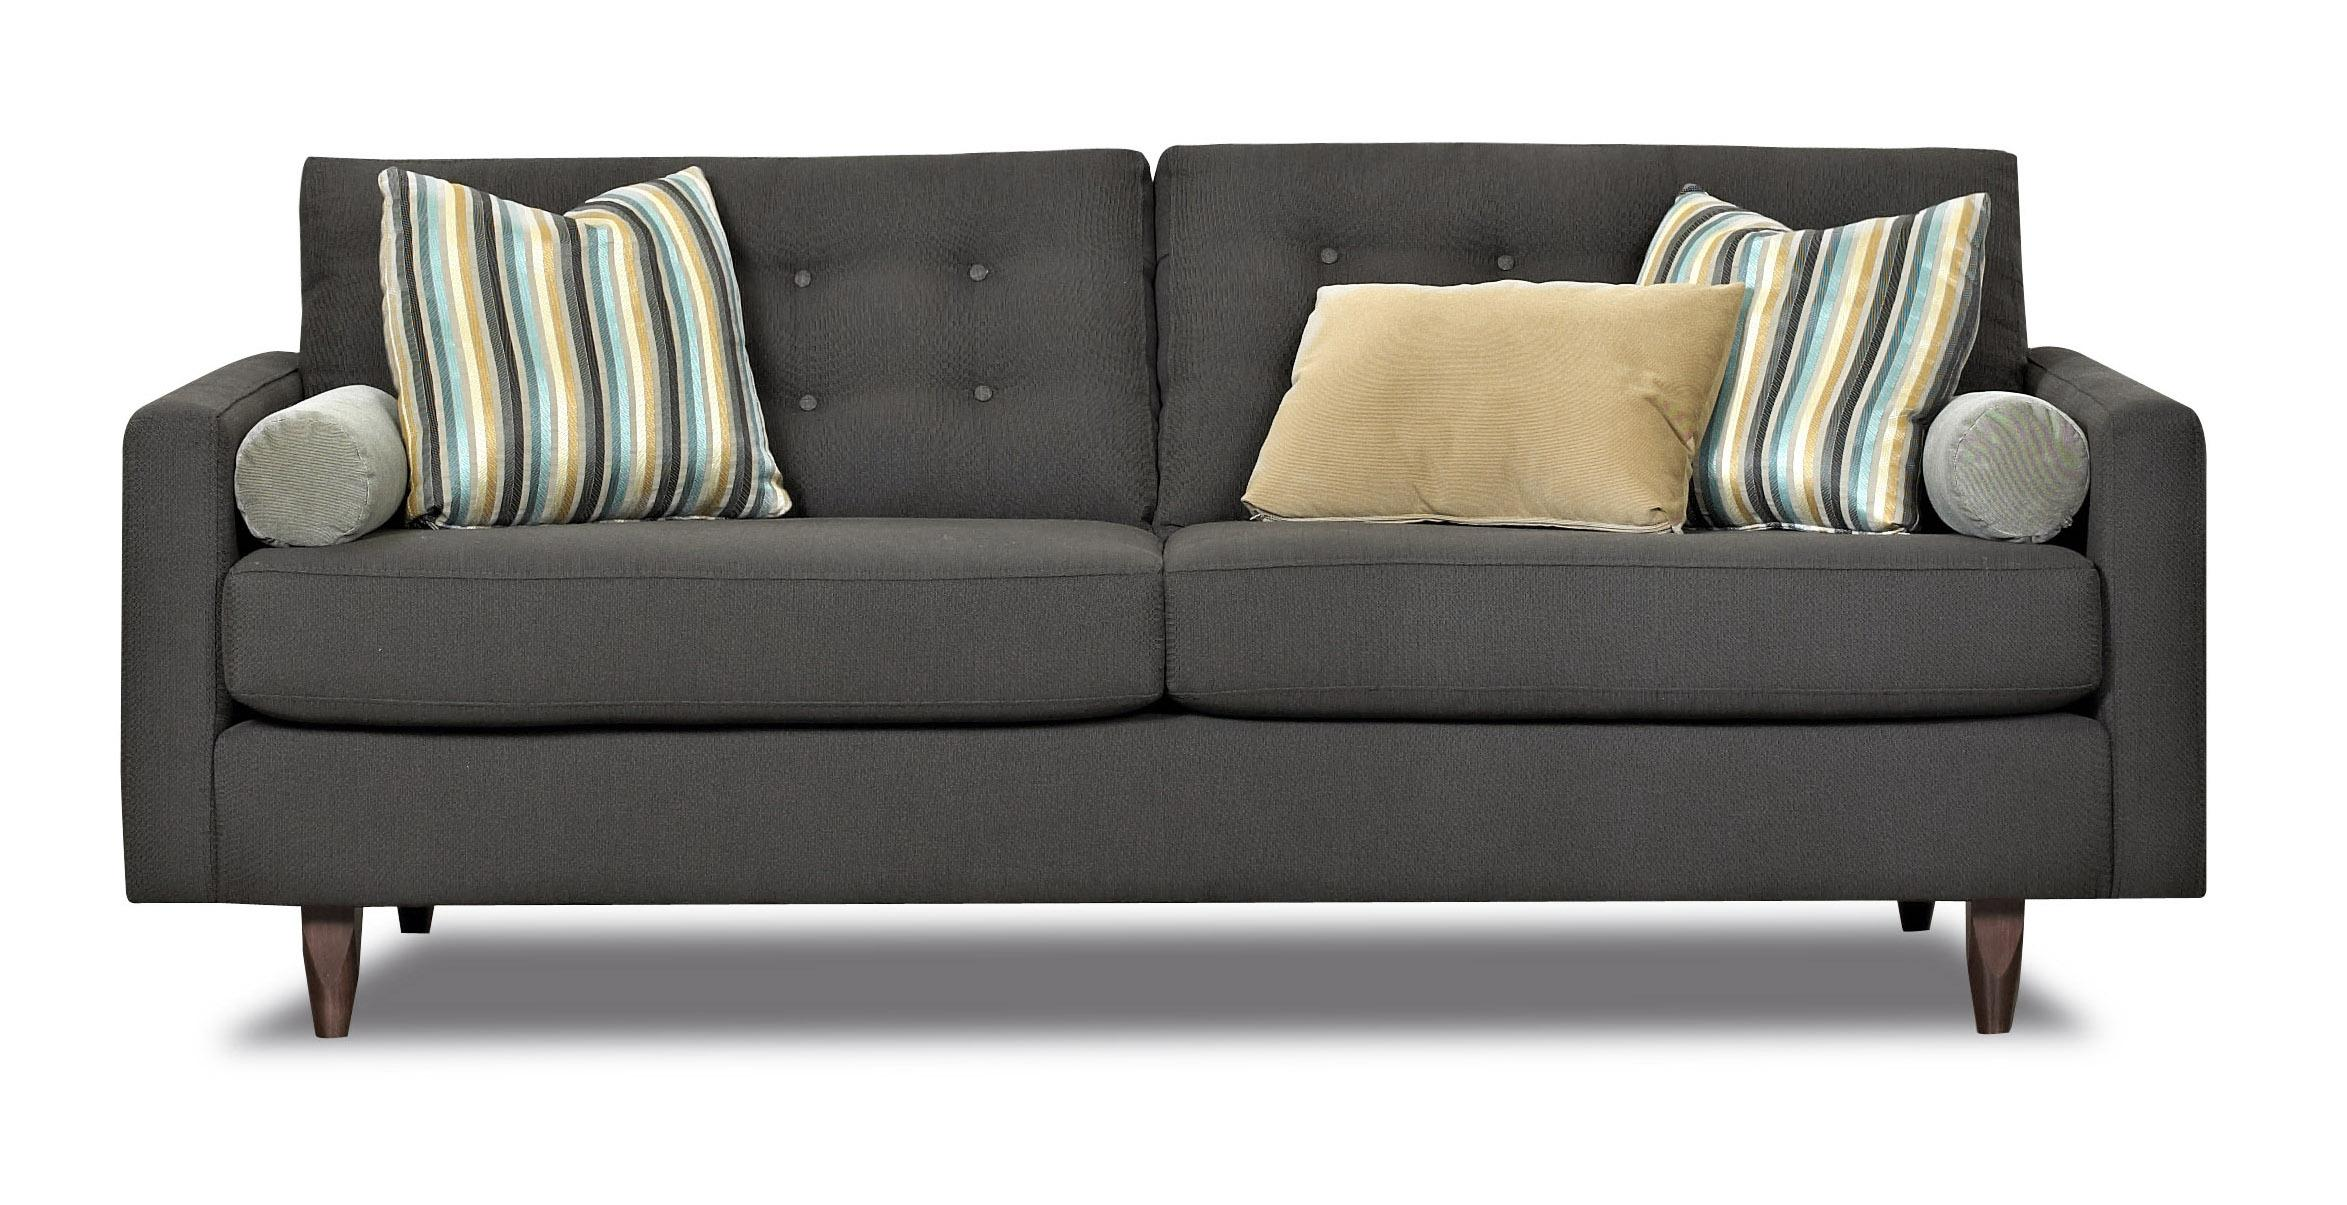 Klaussner Craven Sofa Item Number K30500 S